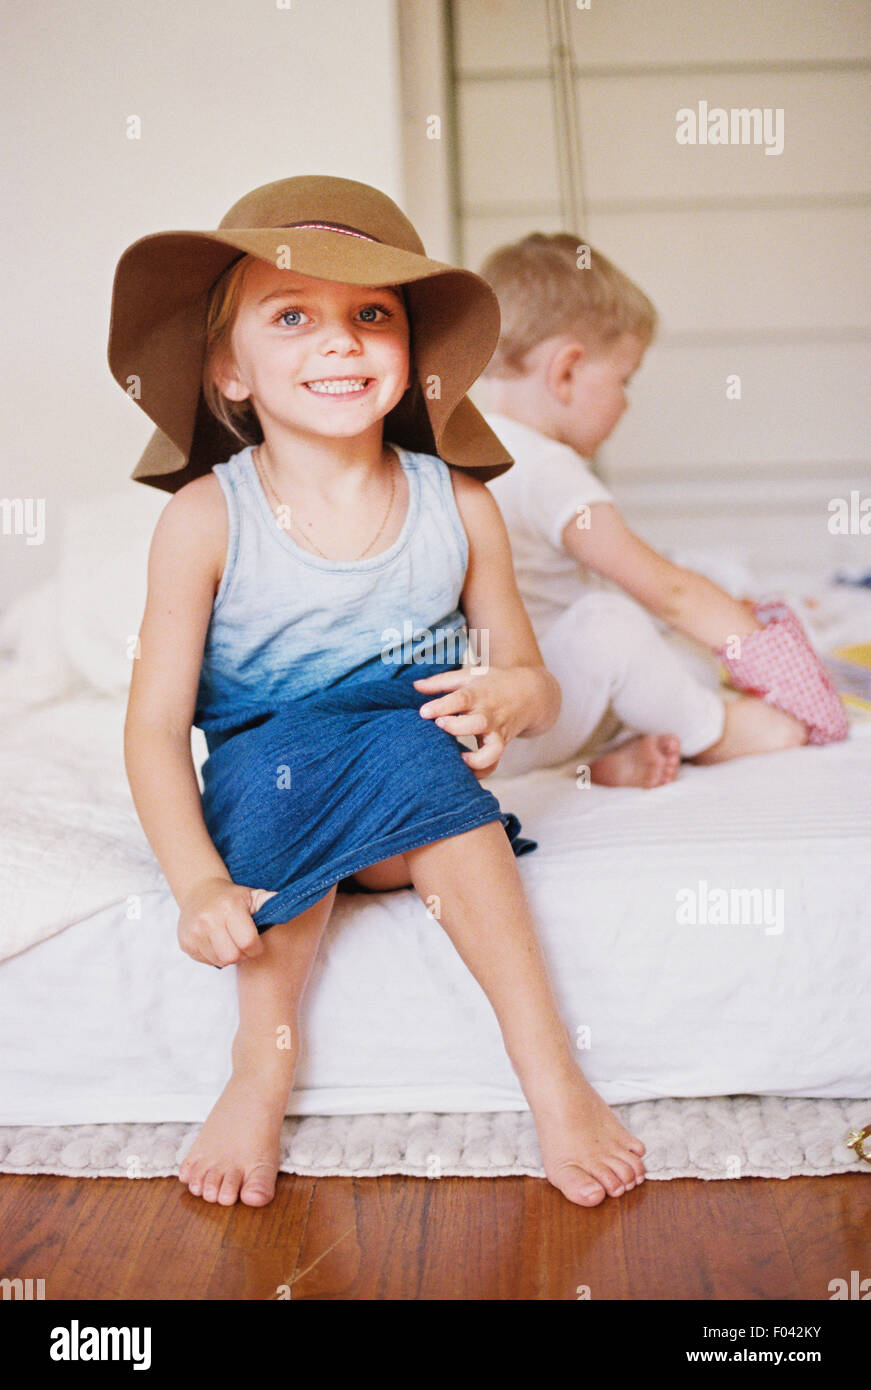 Young girl wearing a dress and large floppy hat on a bed with her younger brother. - Stock Image